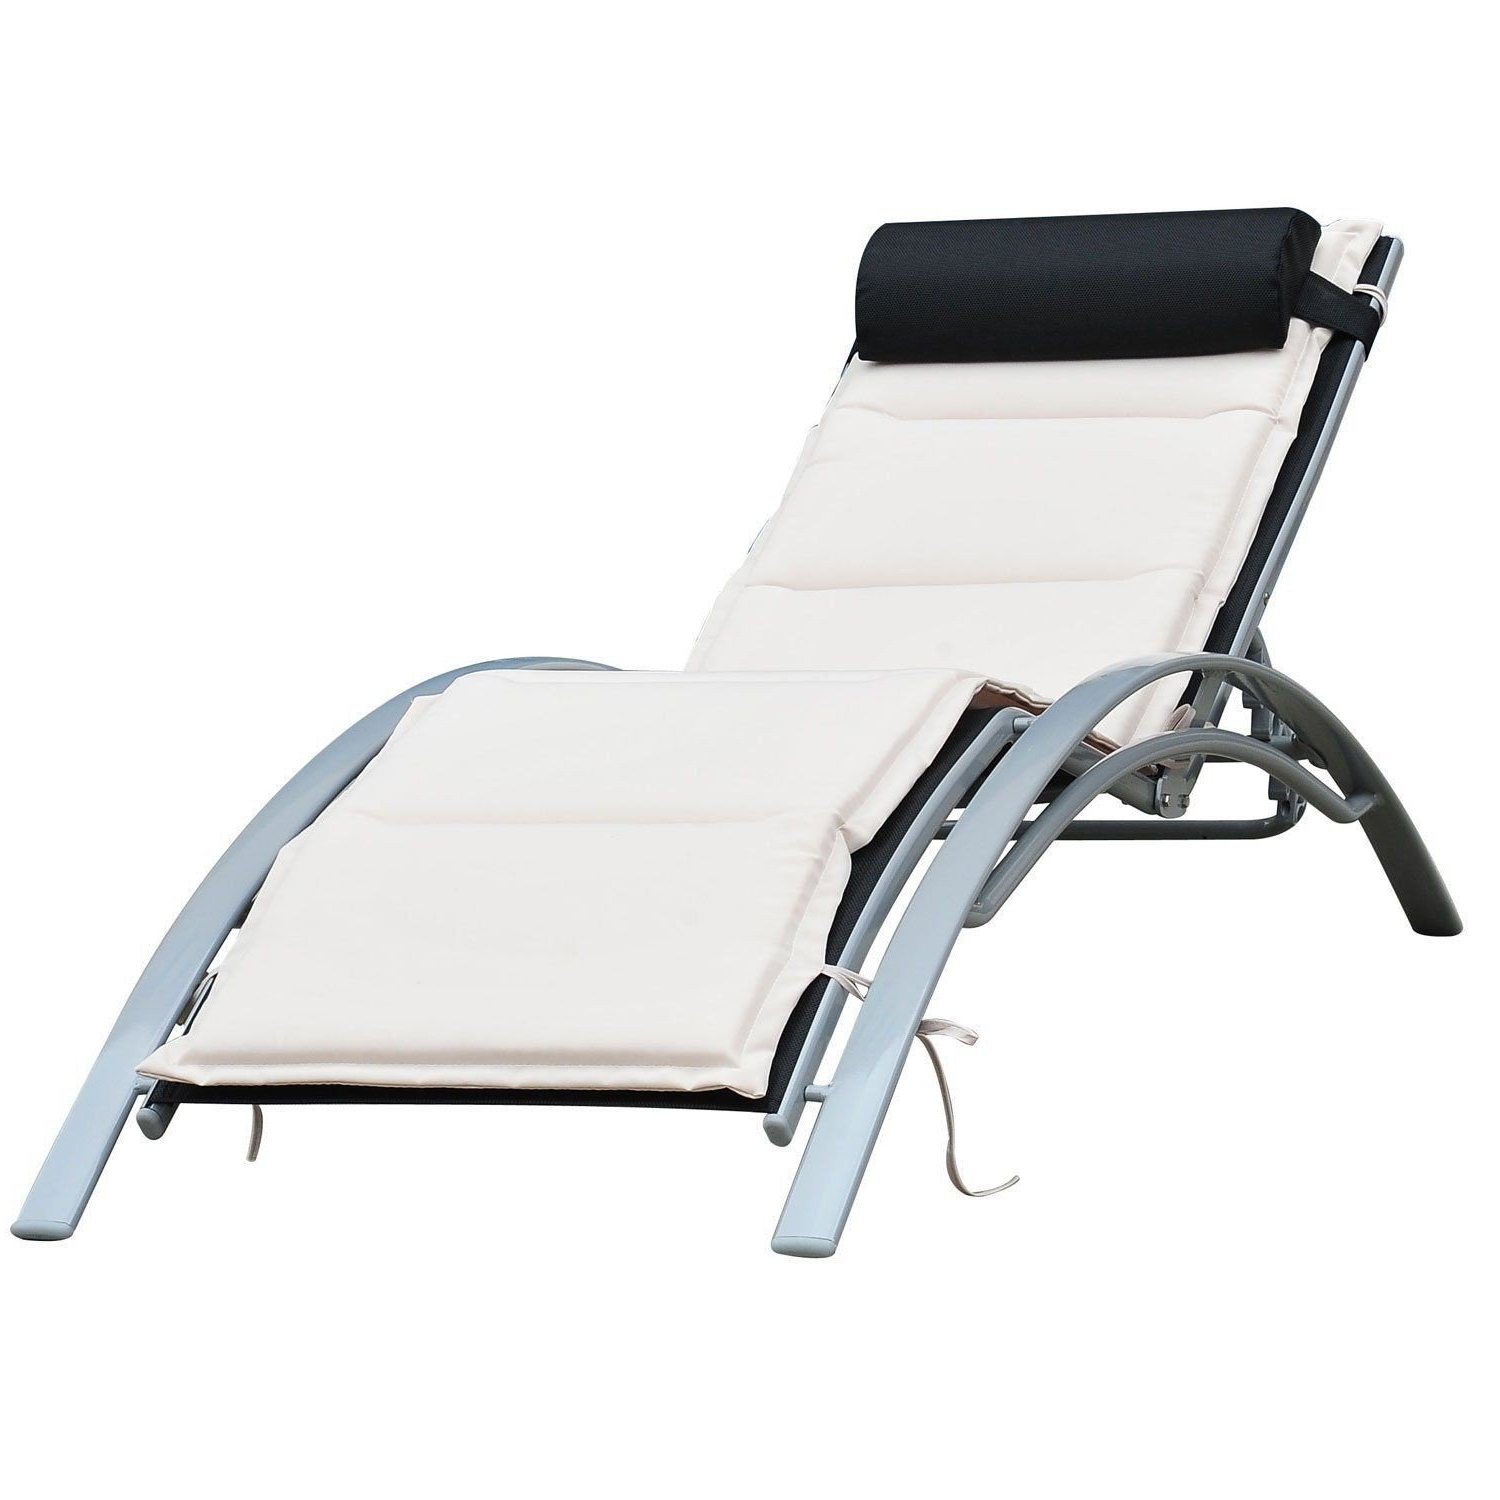 Top 15 of Chaise Lounge Reclining Chairs For Outdoor